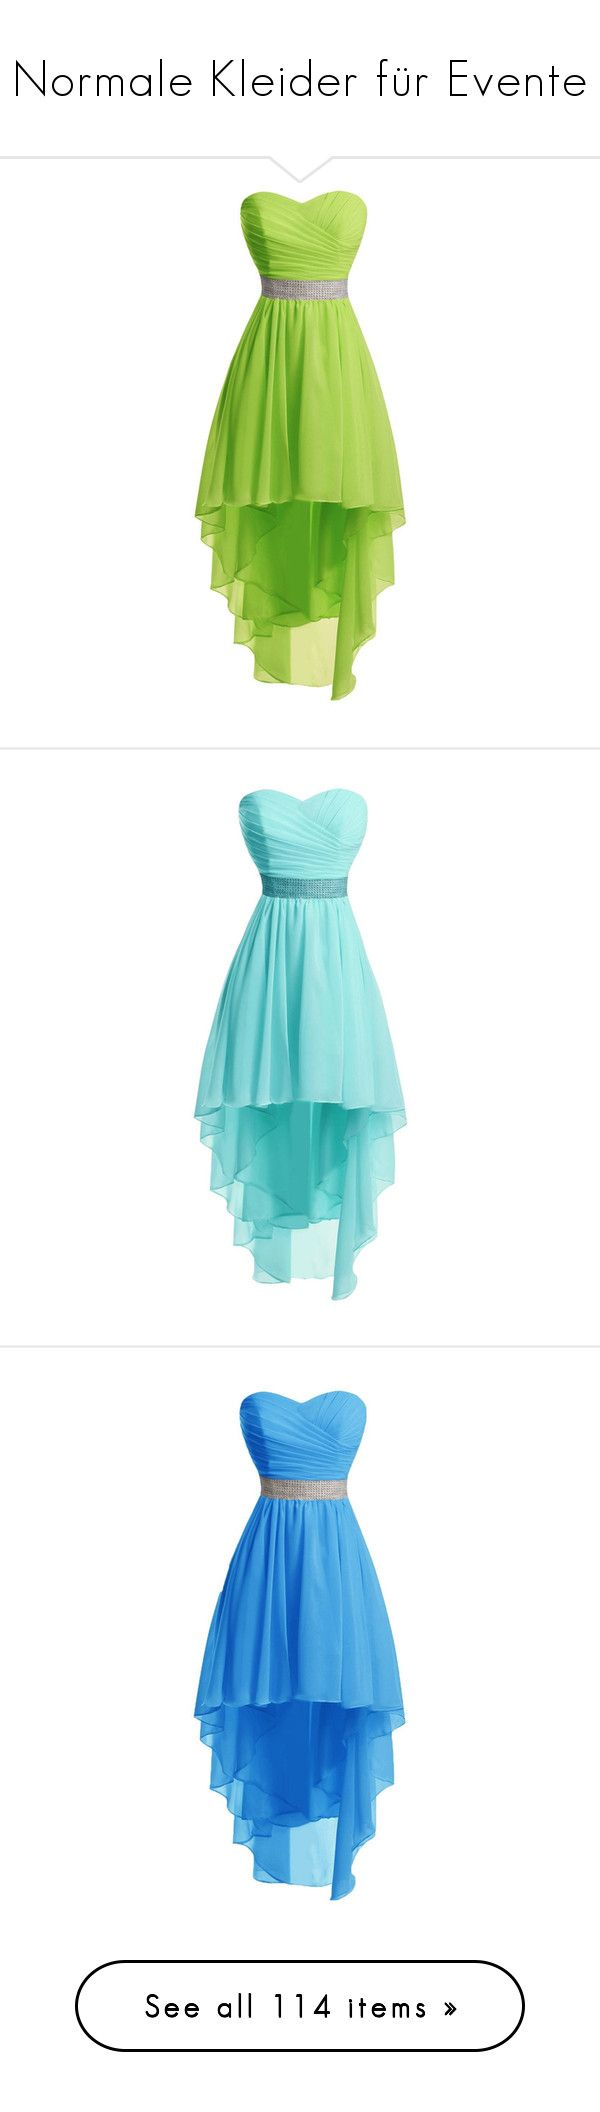 """""""Normale Kleider für Evente"""" by lynera ❤ liked on Polyvore featuring dresses, homecoming dresses, cocktail prom dress, green dress, high low homecoming dresses, green prom dresses, hi low prom dresses, cocktail party dress, blue dress and hi lo prom dresses"""